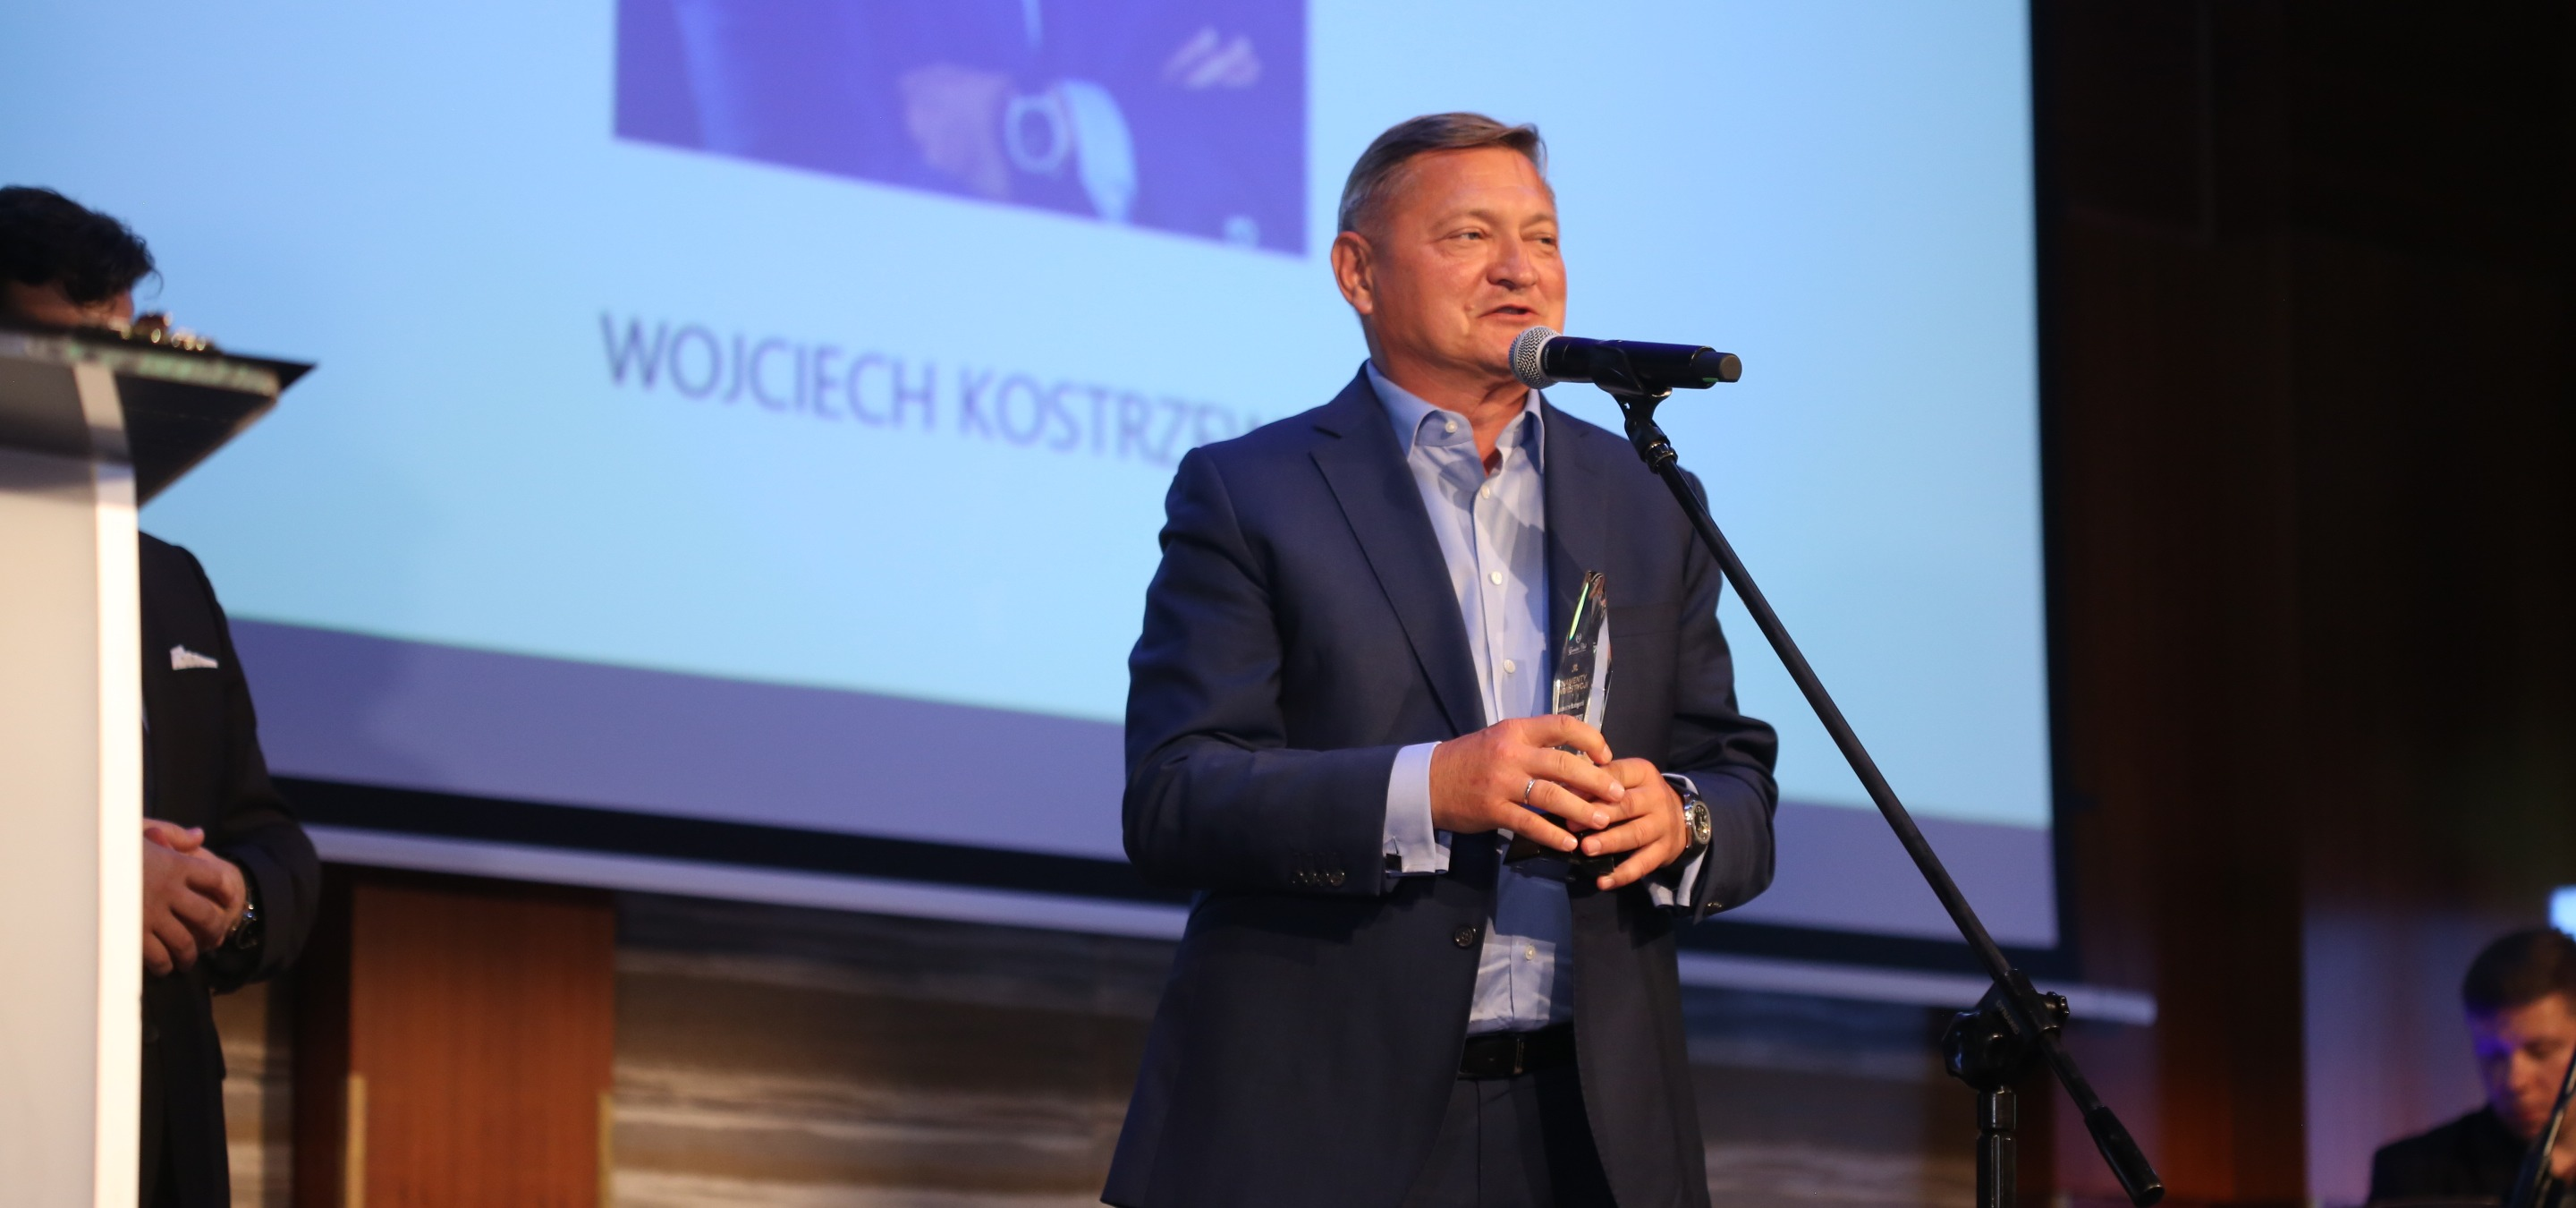 Billon's CEO Wojtek Kostrzewa wins the title of the Business Angel of the Year